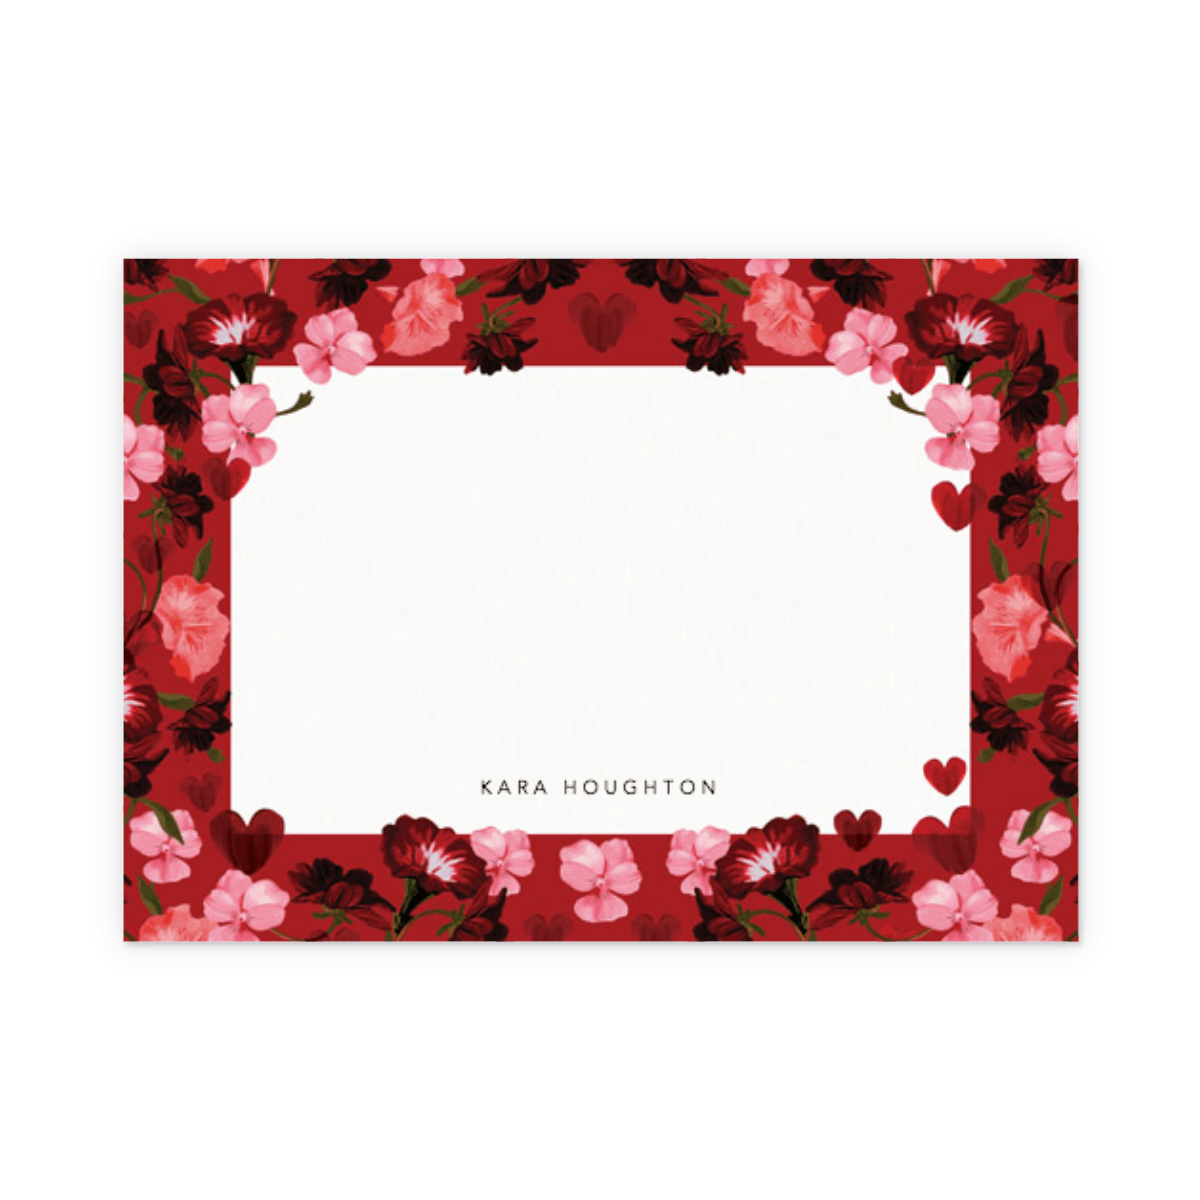 Https%3a%2f%2fwww.papier.com%2fproduct image%2f45362%2f10%2fvalentina red 11249 front 1551266684.png?ixlib=rb 1.1